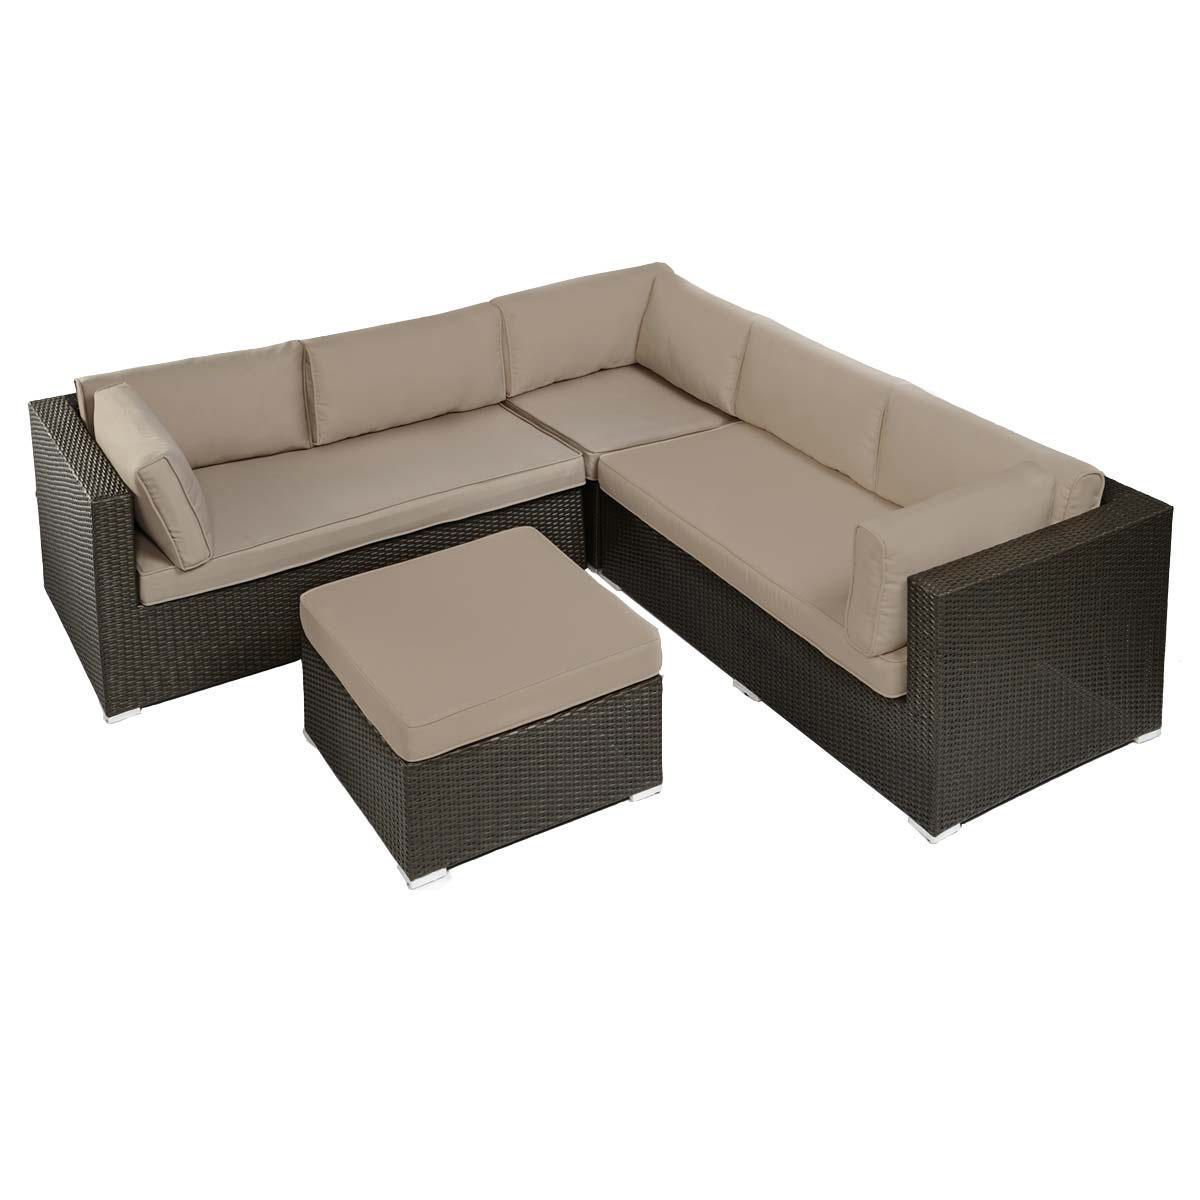 Elegant Gartenm Bel Rattan Lounge Set Tlg With Gartenmbel Set Lounge